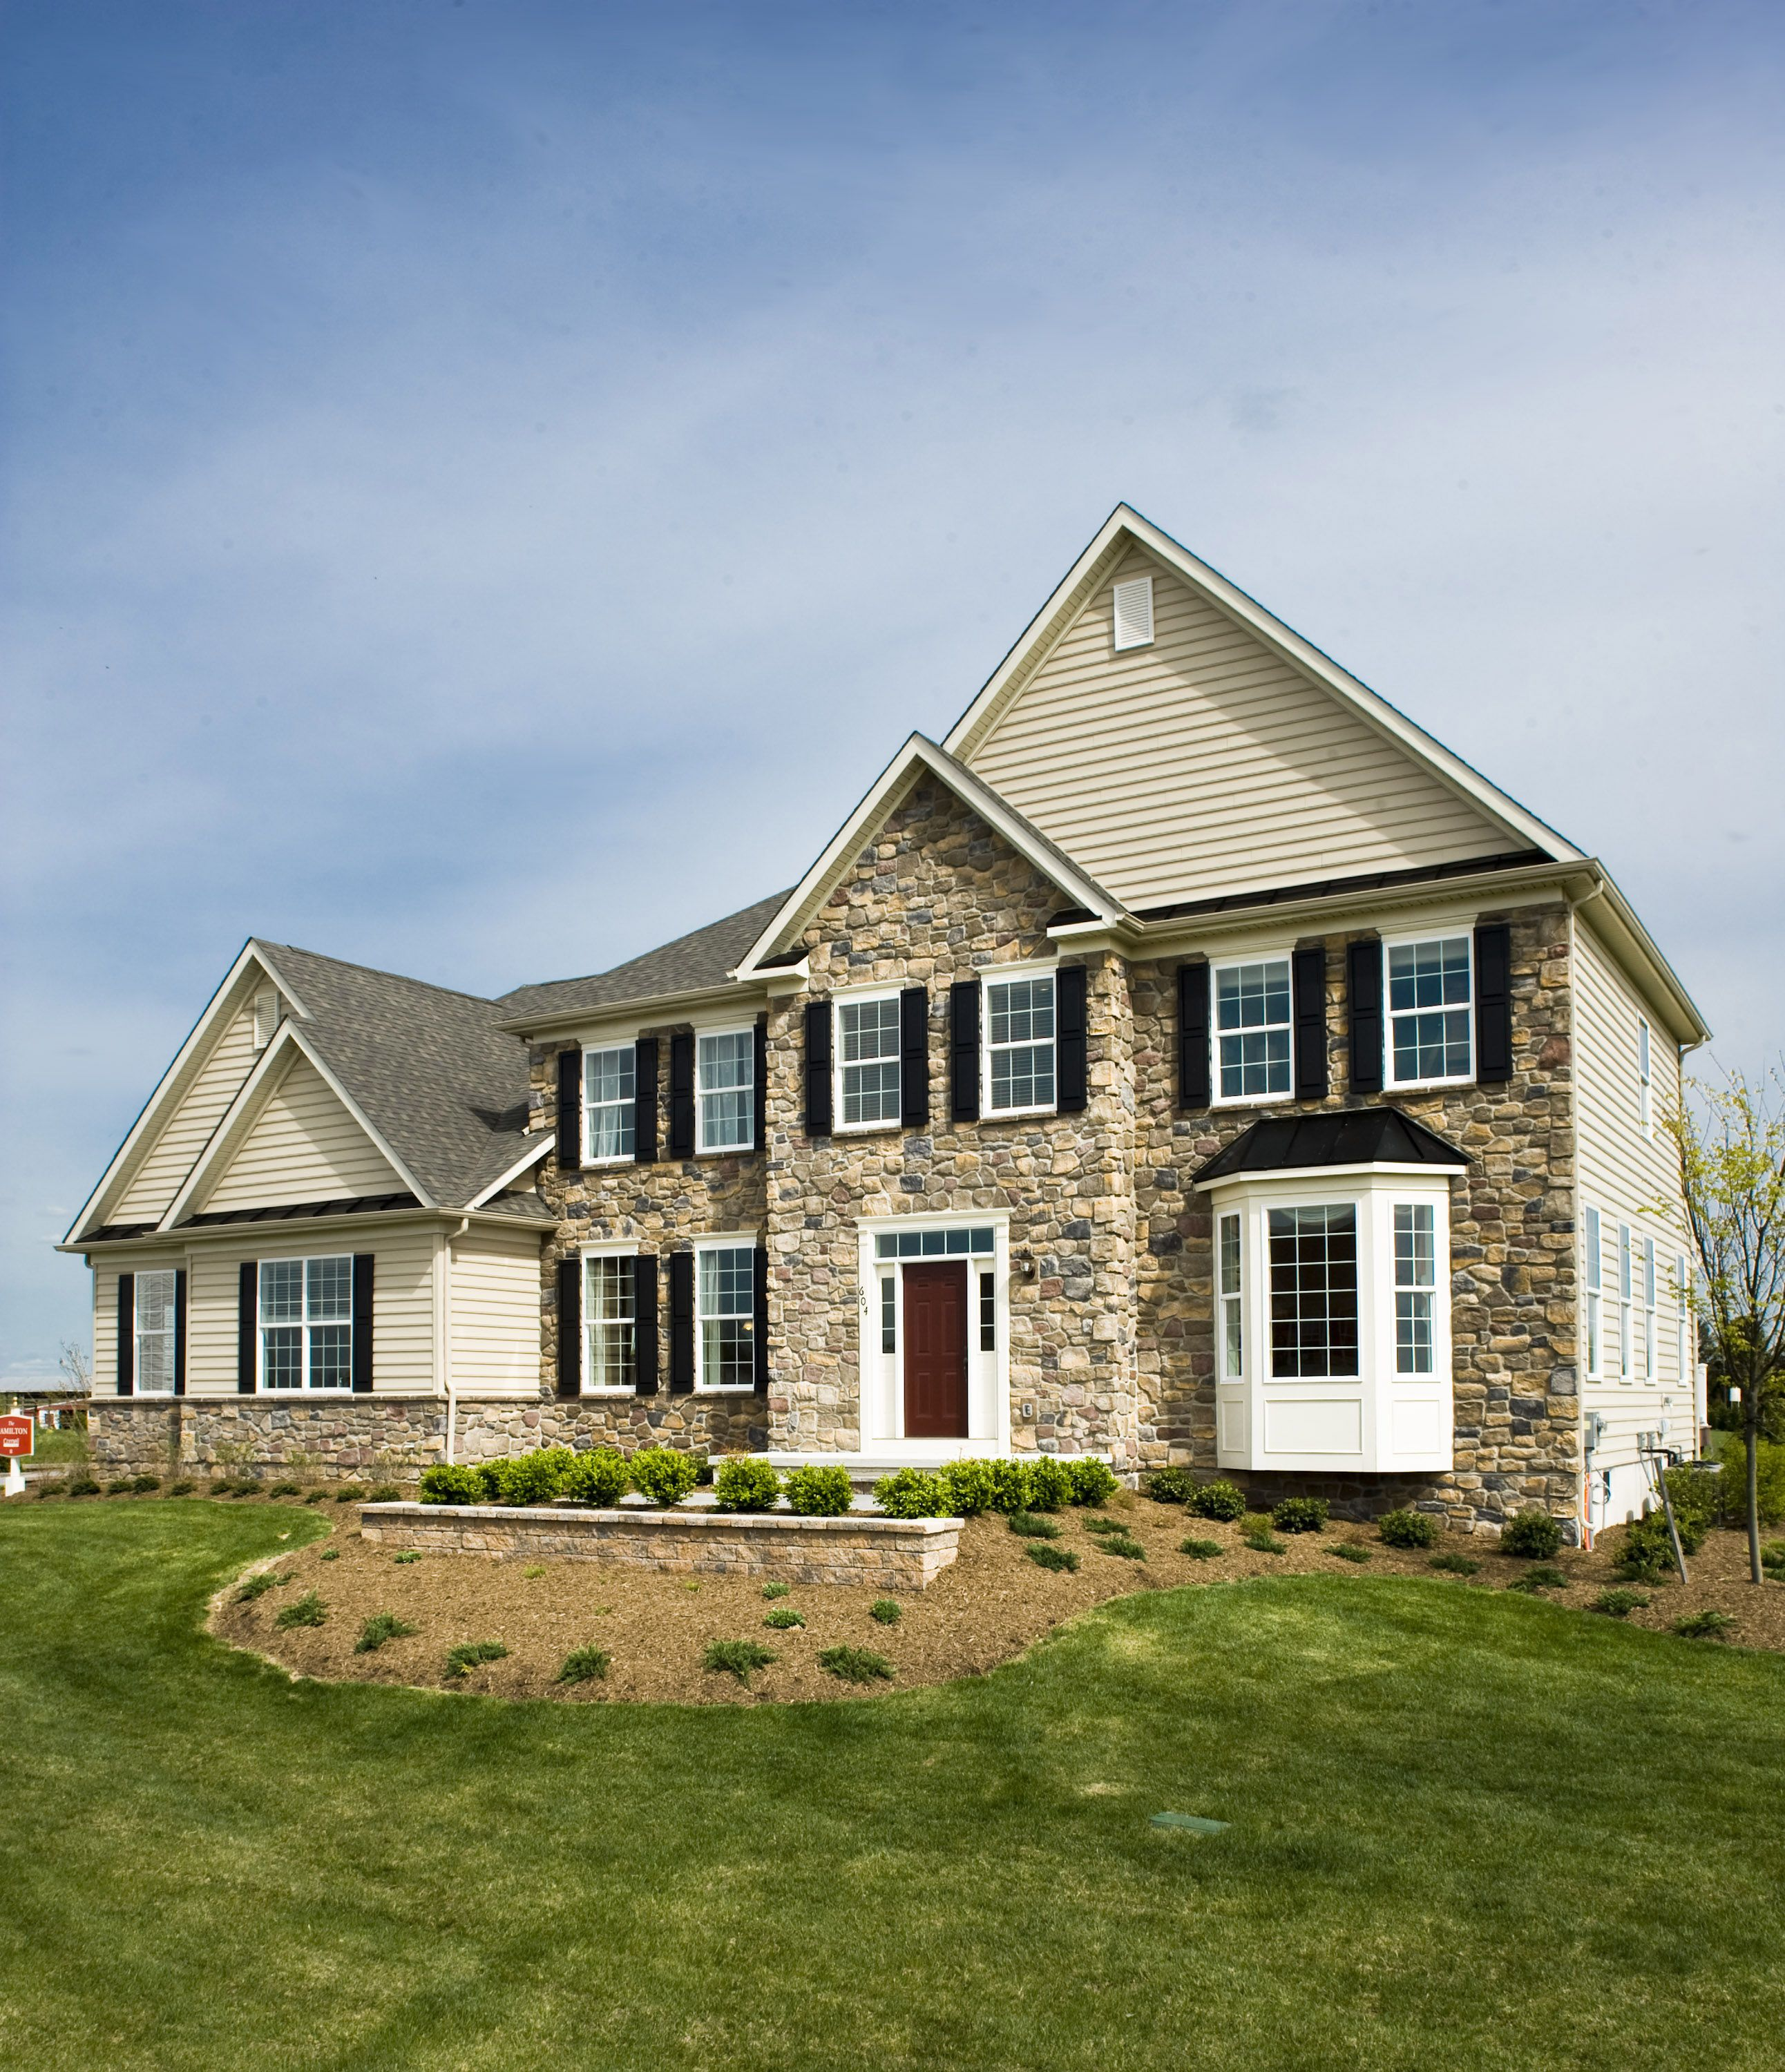 ryland homes - philadelphia, hamilton floor plan | dream home